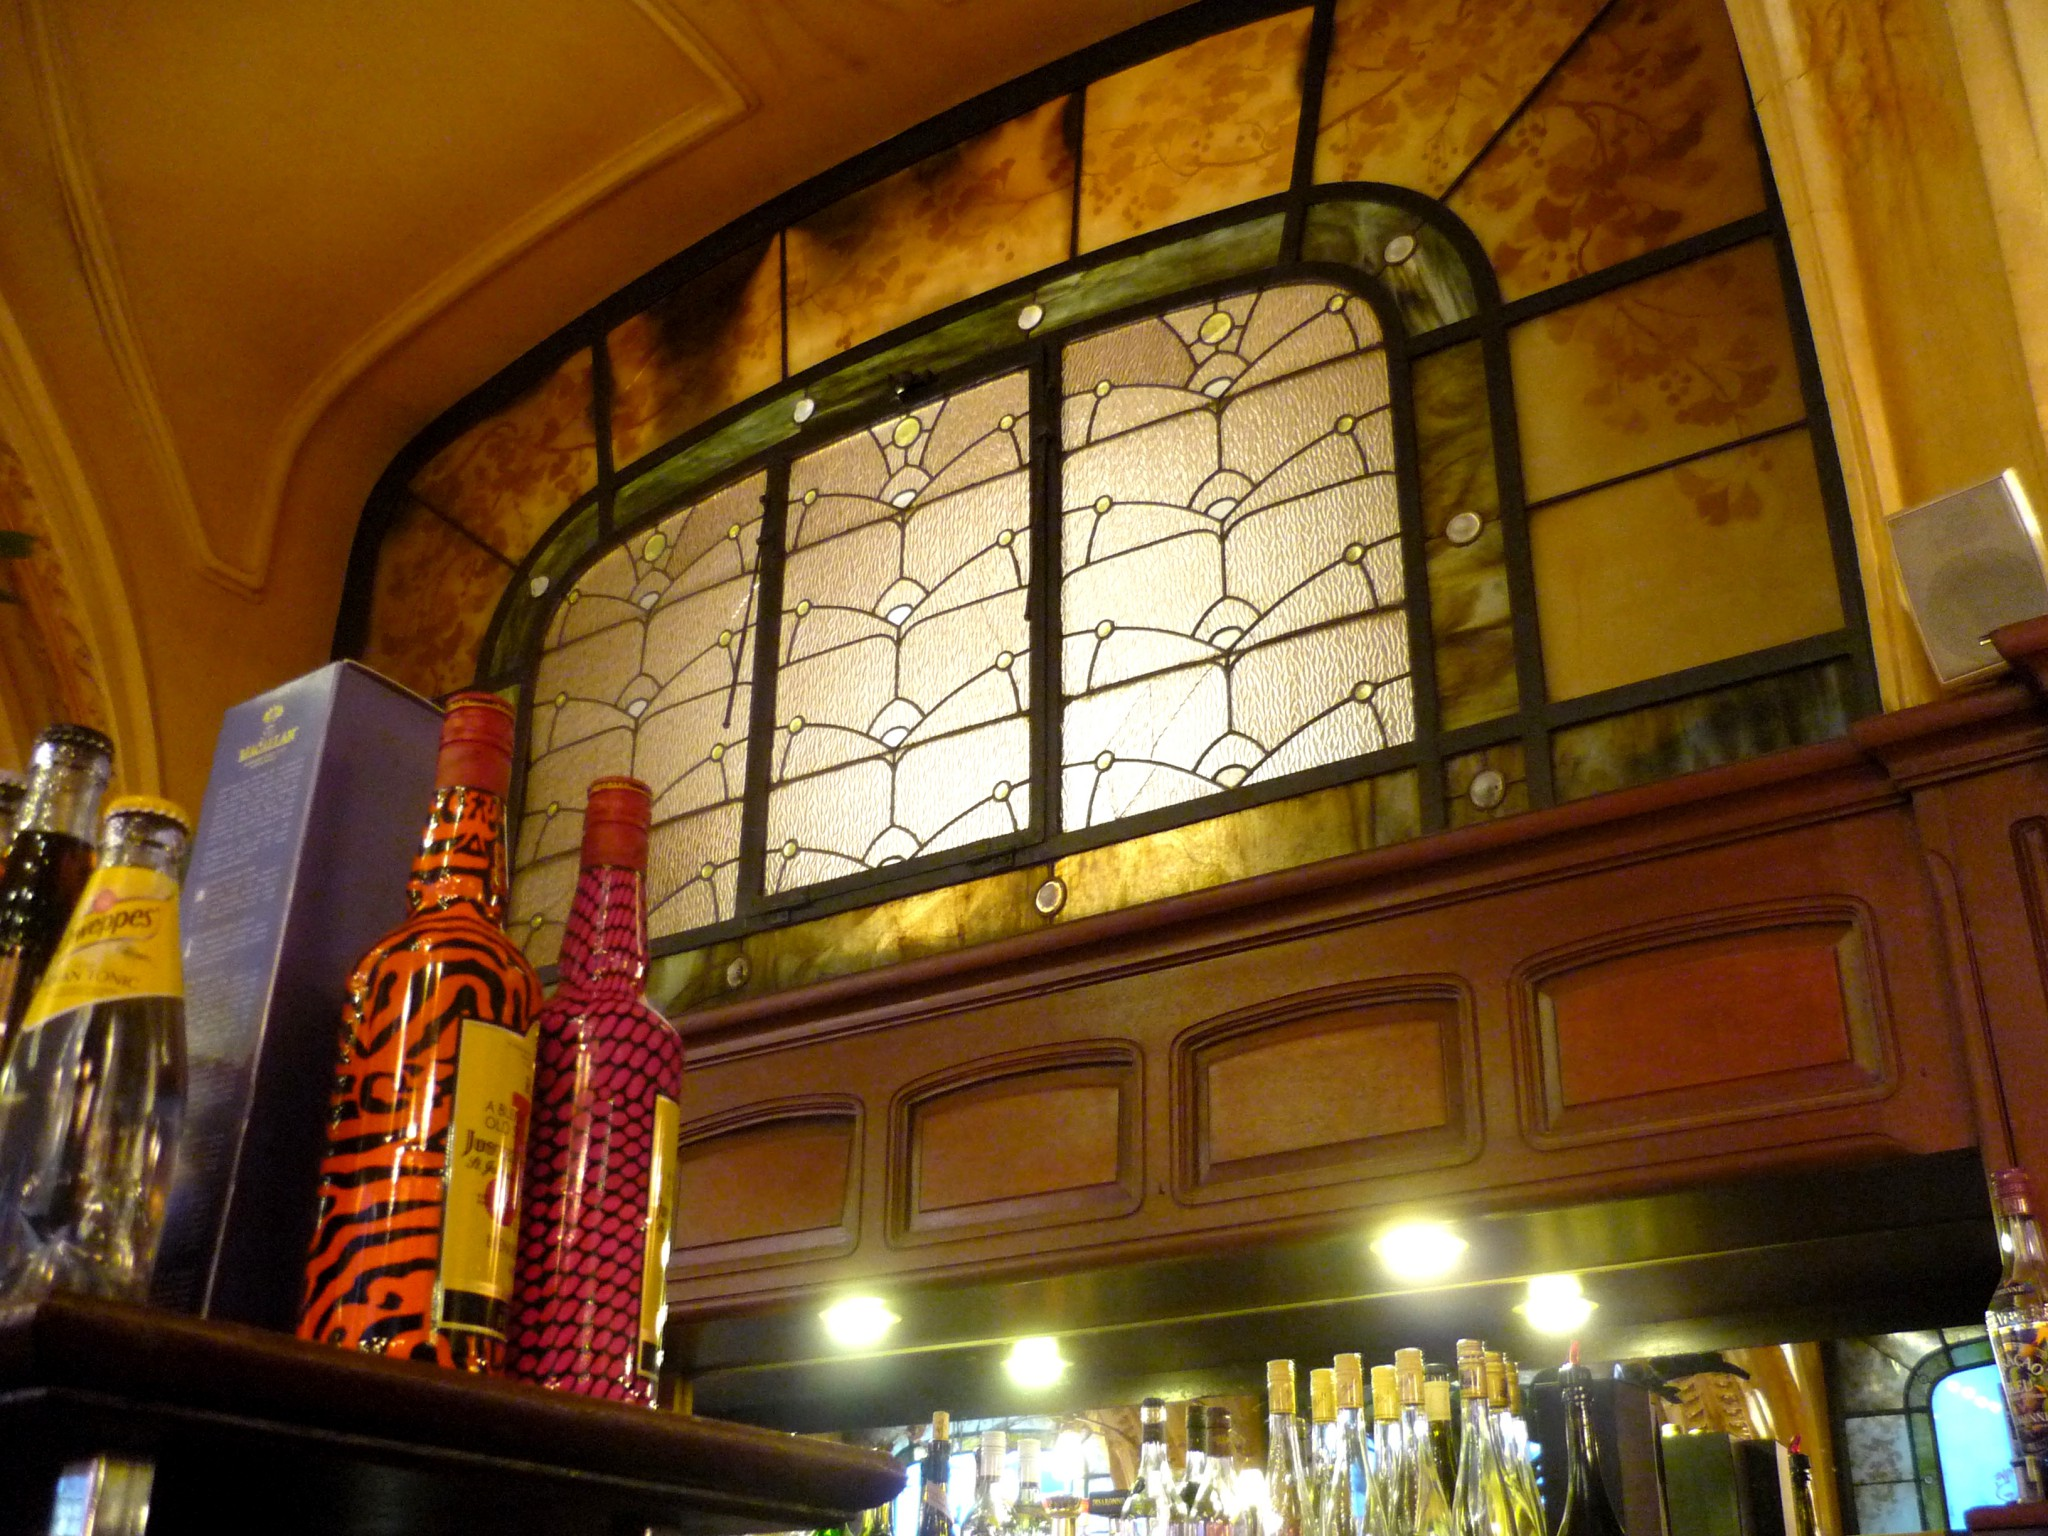 Things to see in Nancy: the Excelsior Brasserie © French Moments